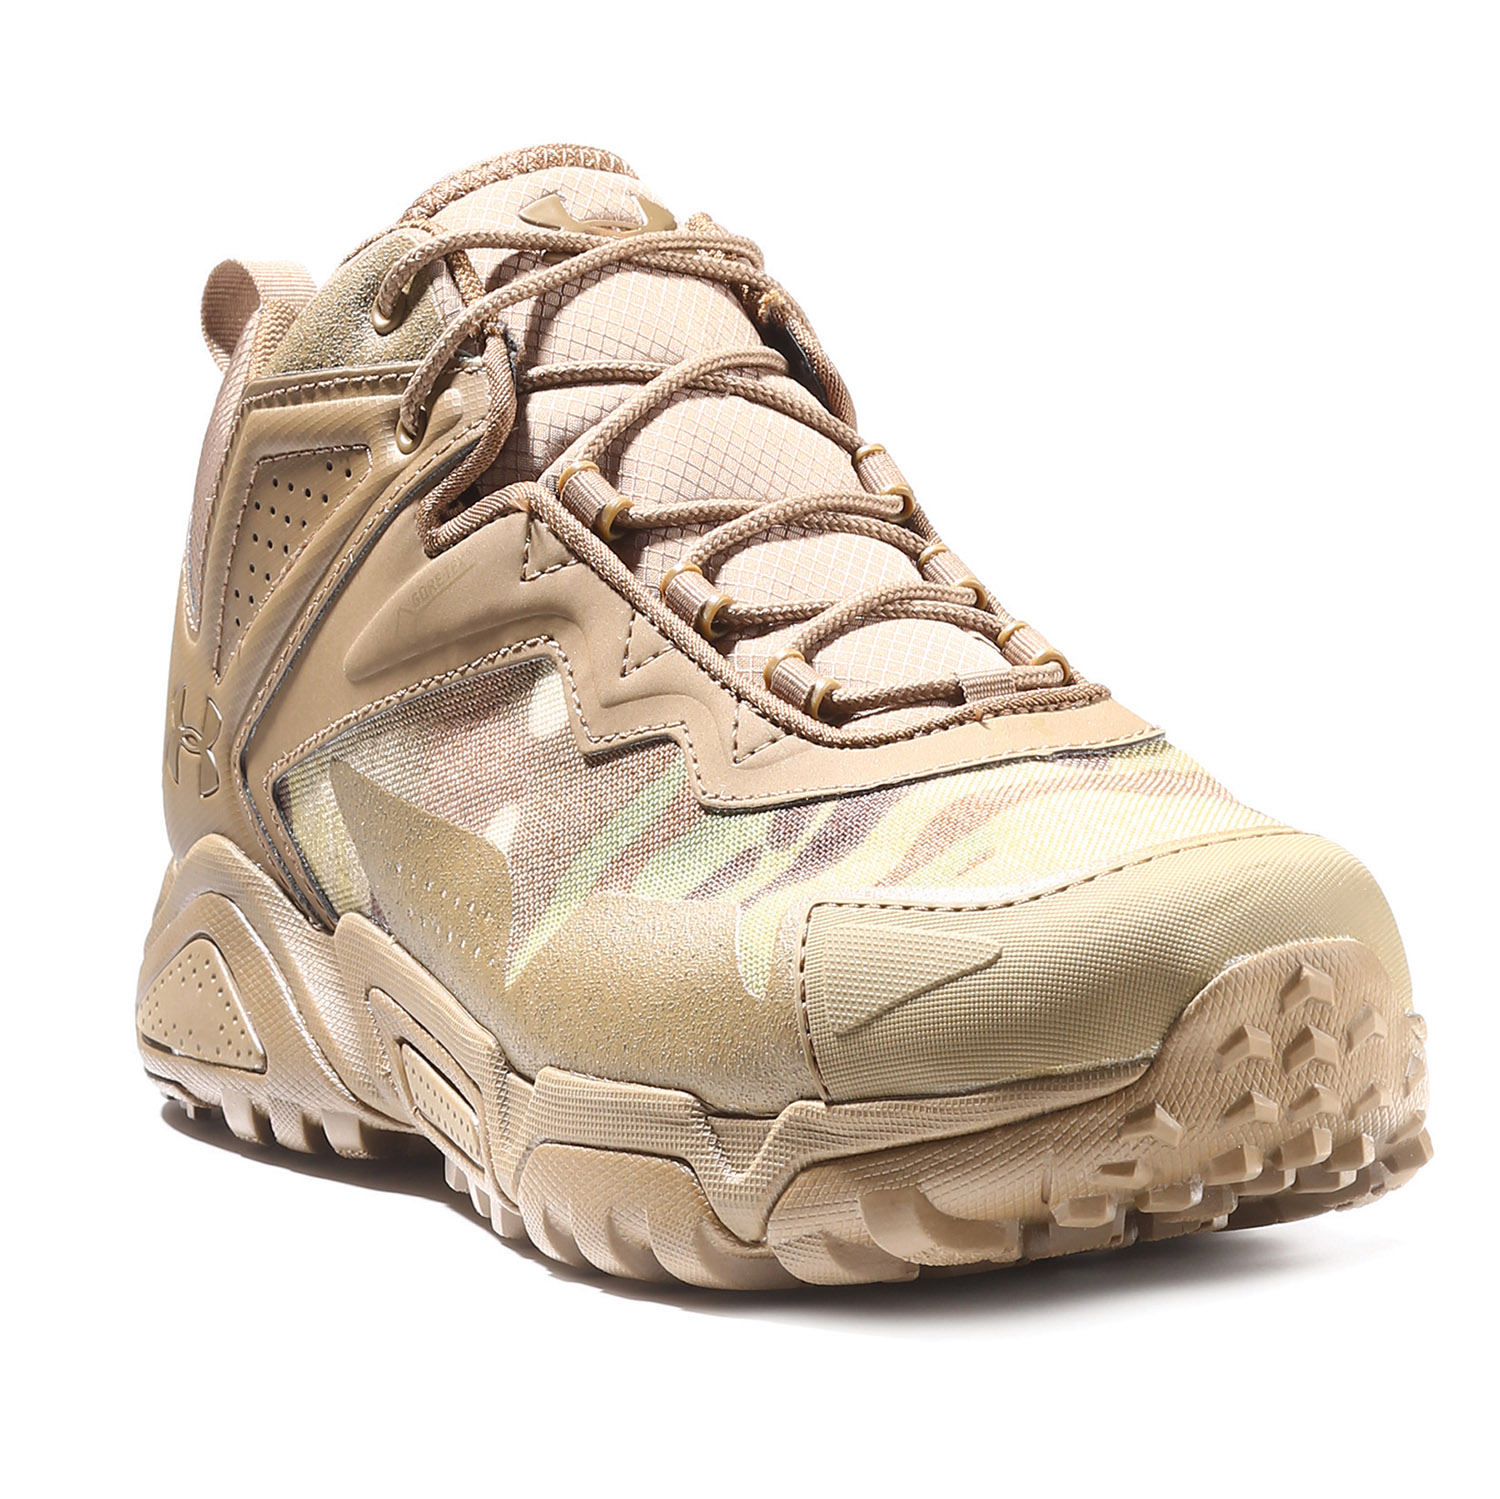 Under Armour Tabor Ridge Waterproof Low boot